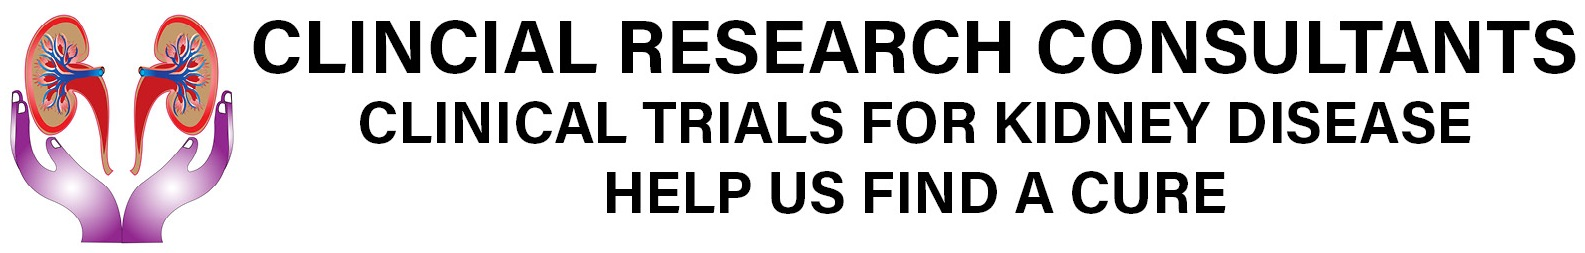 CLINICAL RESEARCH LOGO.jpg